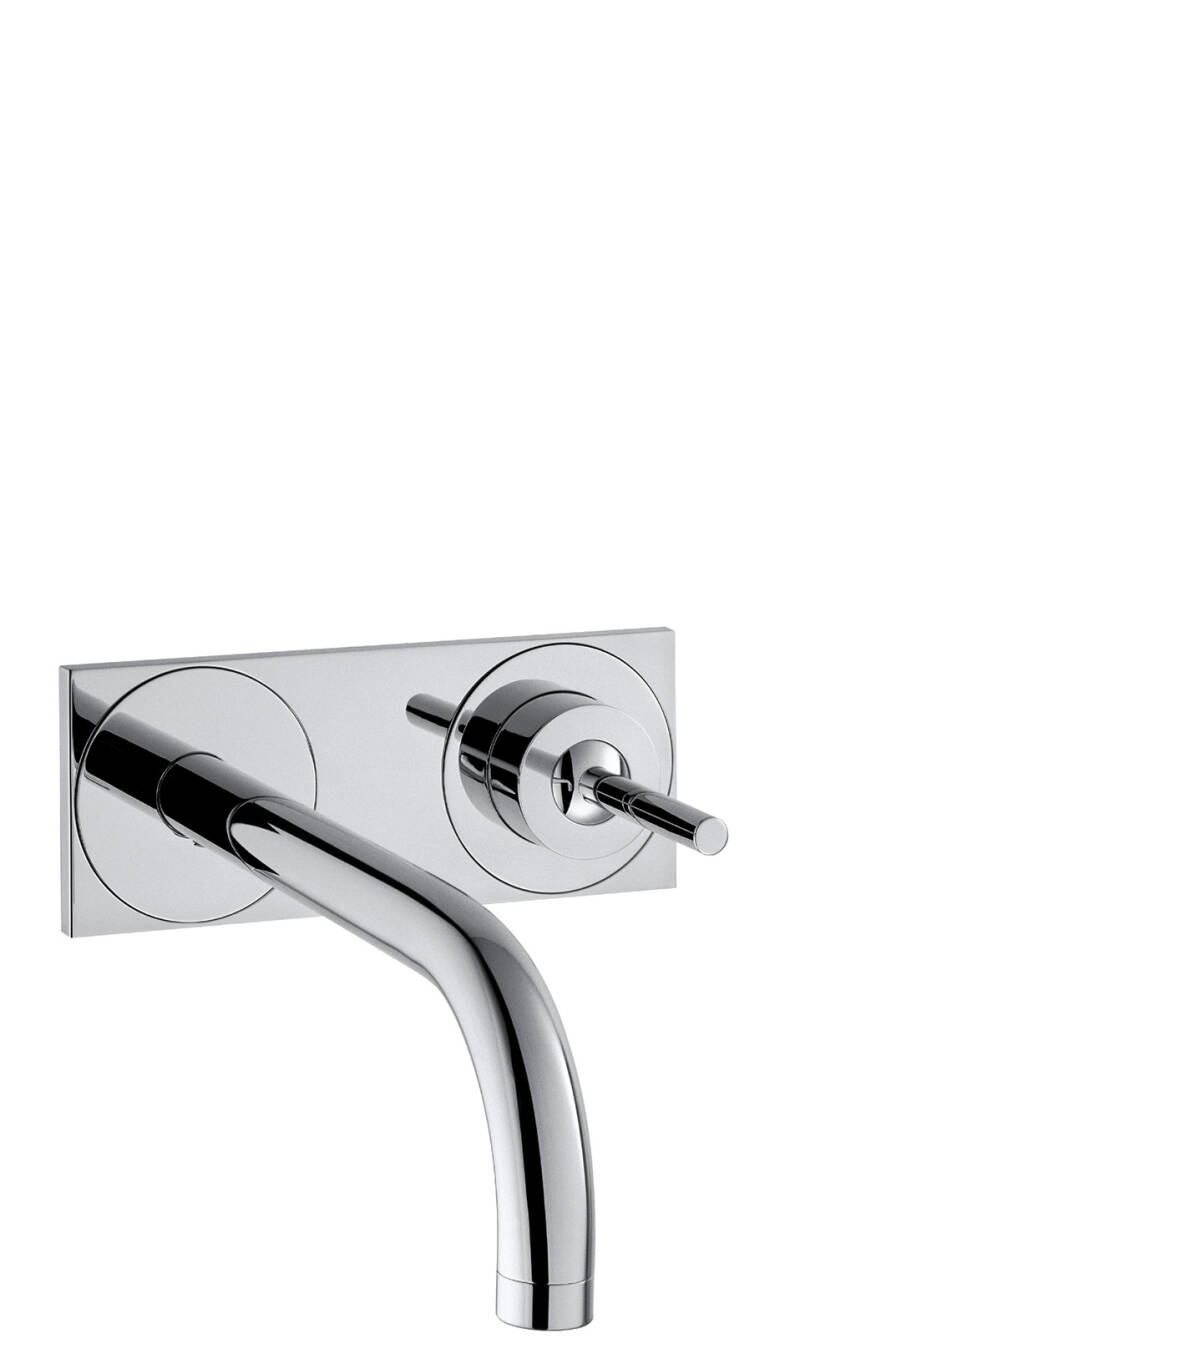 Single lever basin mixer for concealed installation with spout 165 mm and plate wall-mounted, Chrome, 38112000